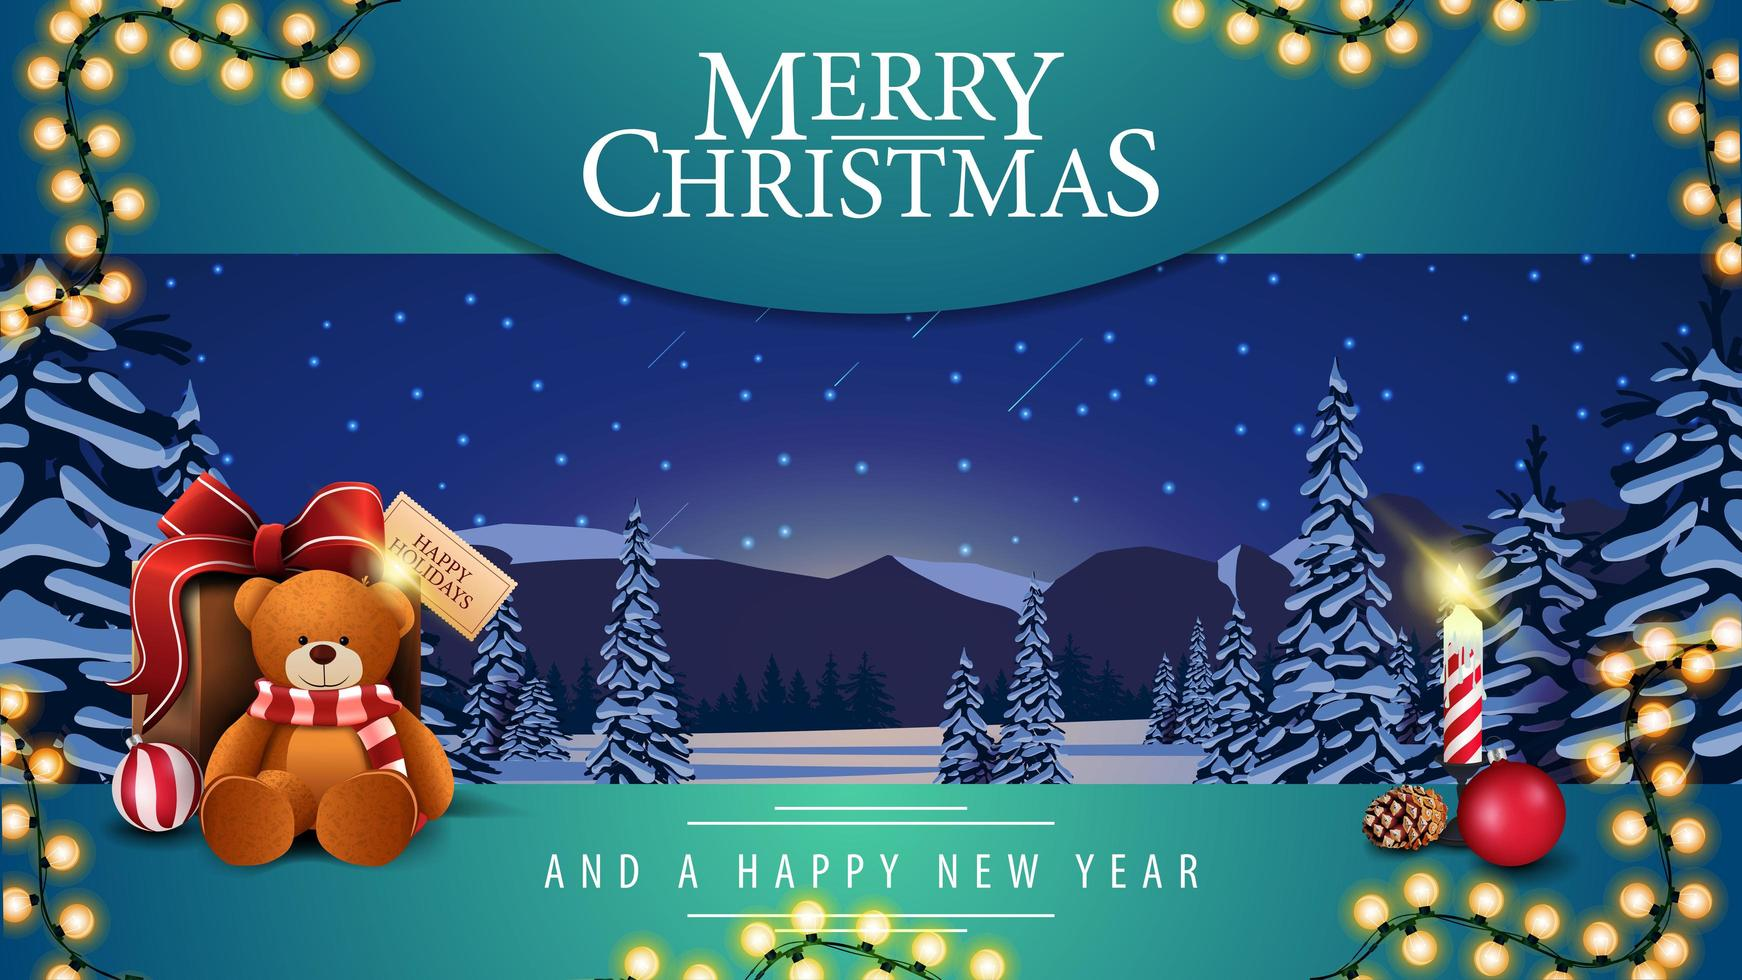 Merry Christmas and a happy New Year postcard vector